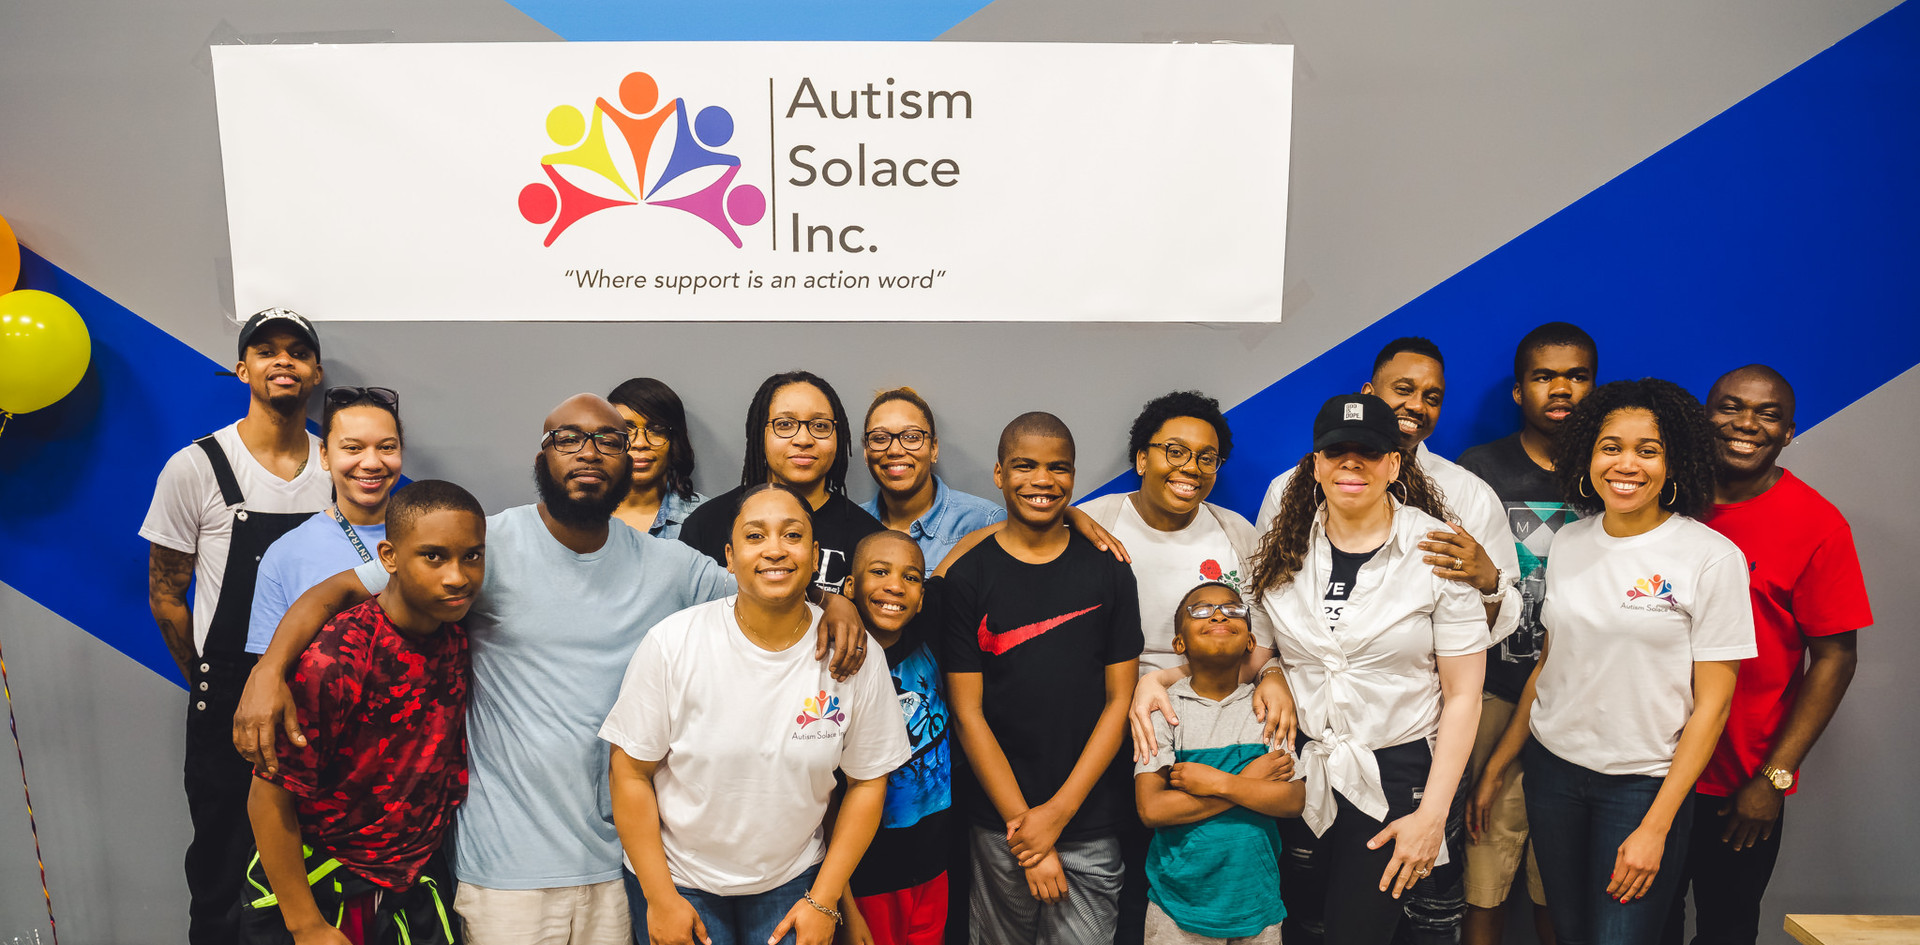 Autism-Solace-Spring-2019-0181.jpg